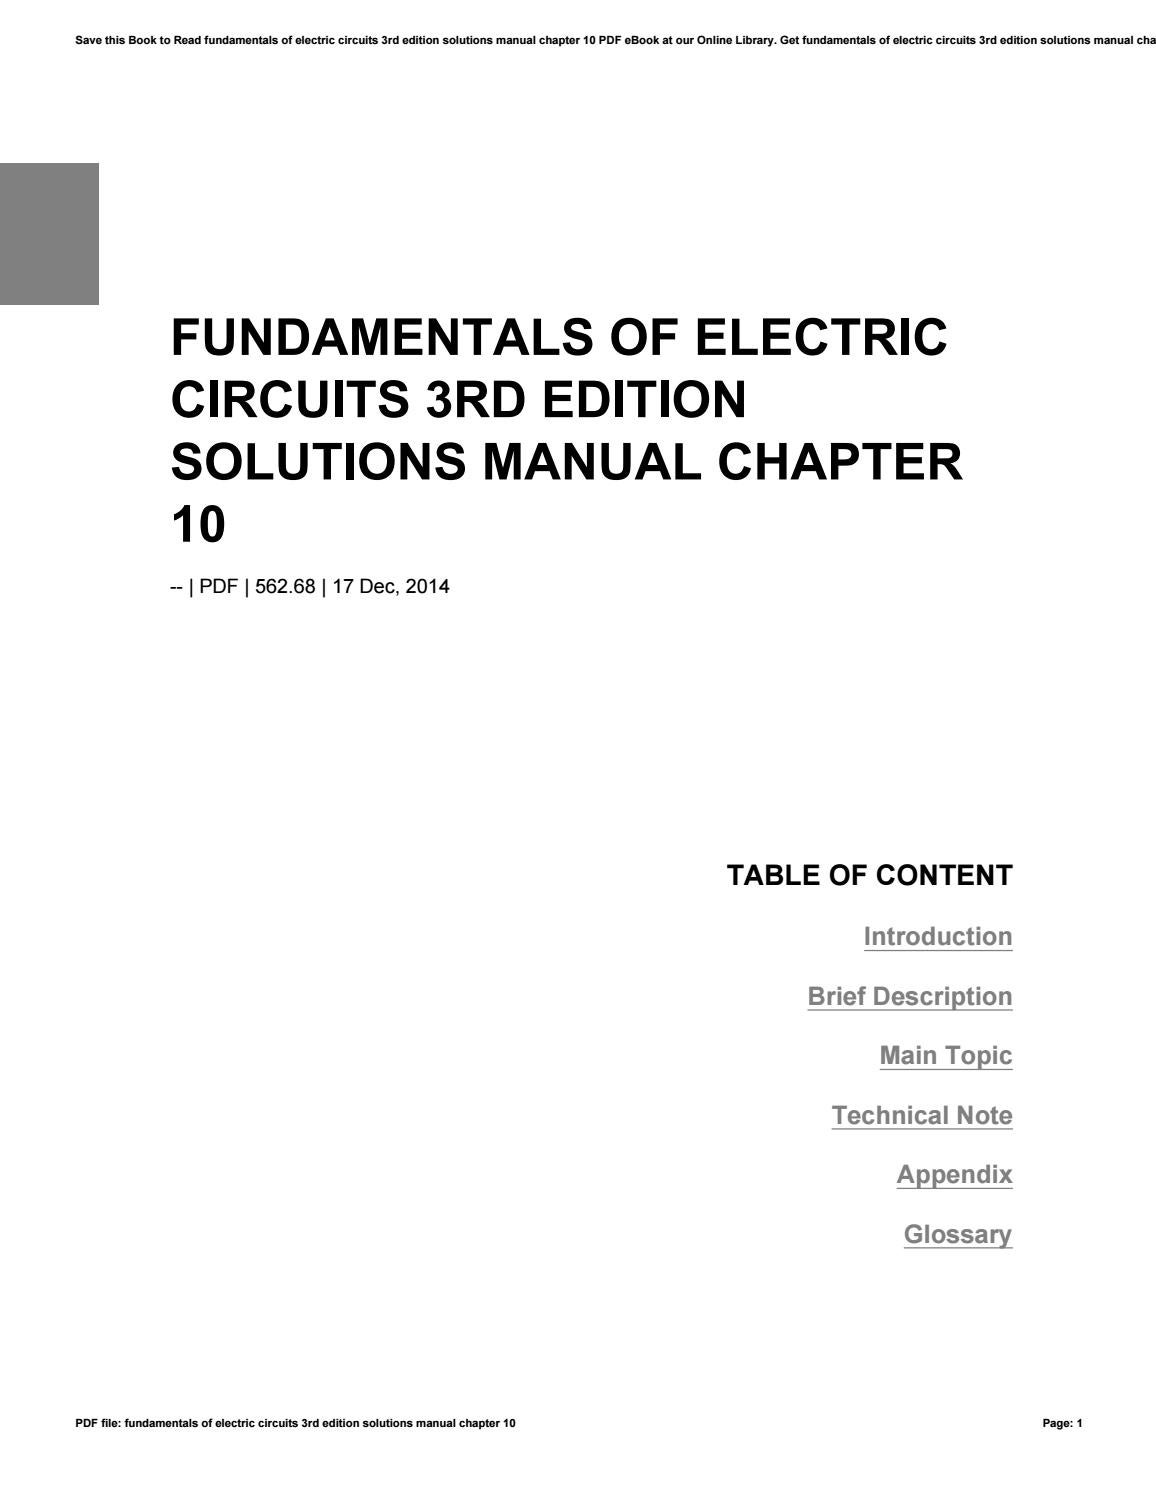 Fundamentals of electric circuits 3rd edition solutions manual chapter 10  by freealtgen4 - issuu